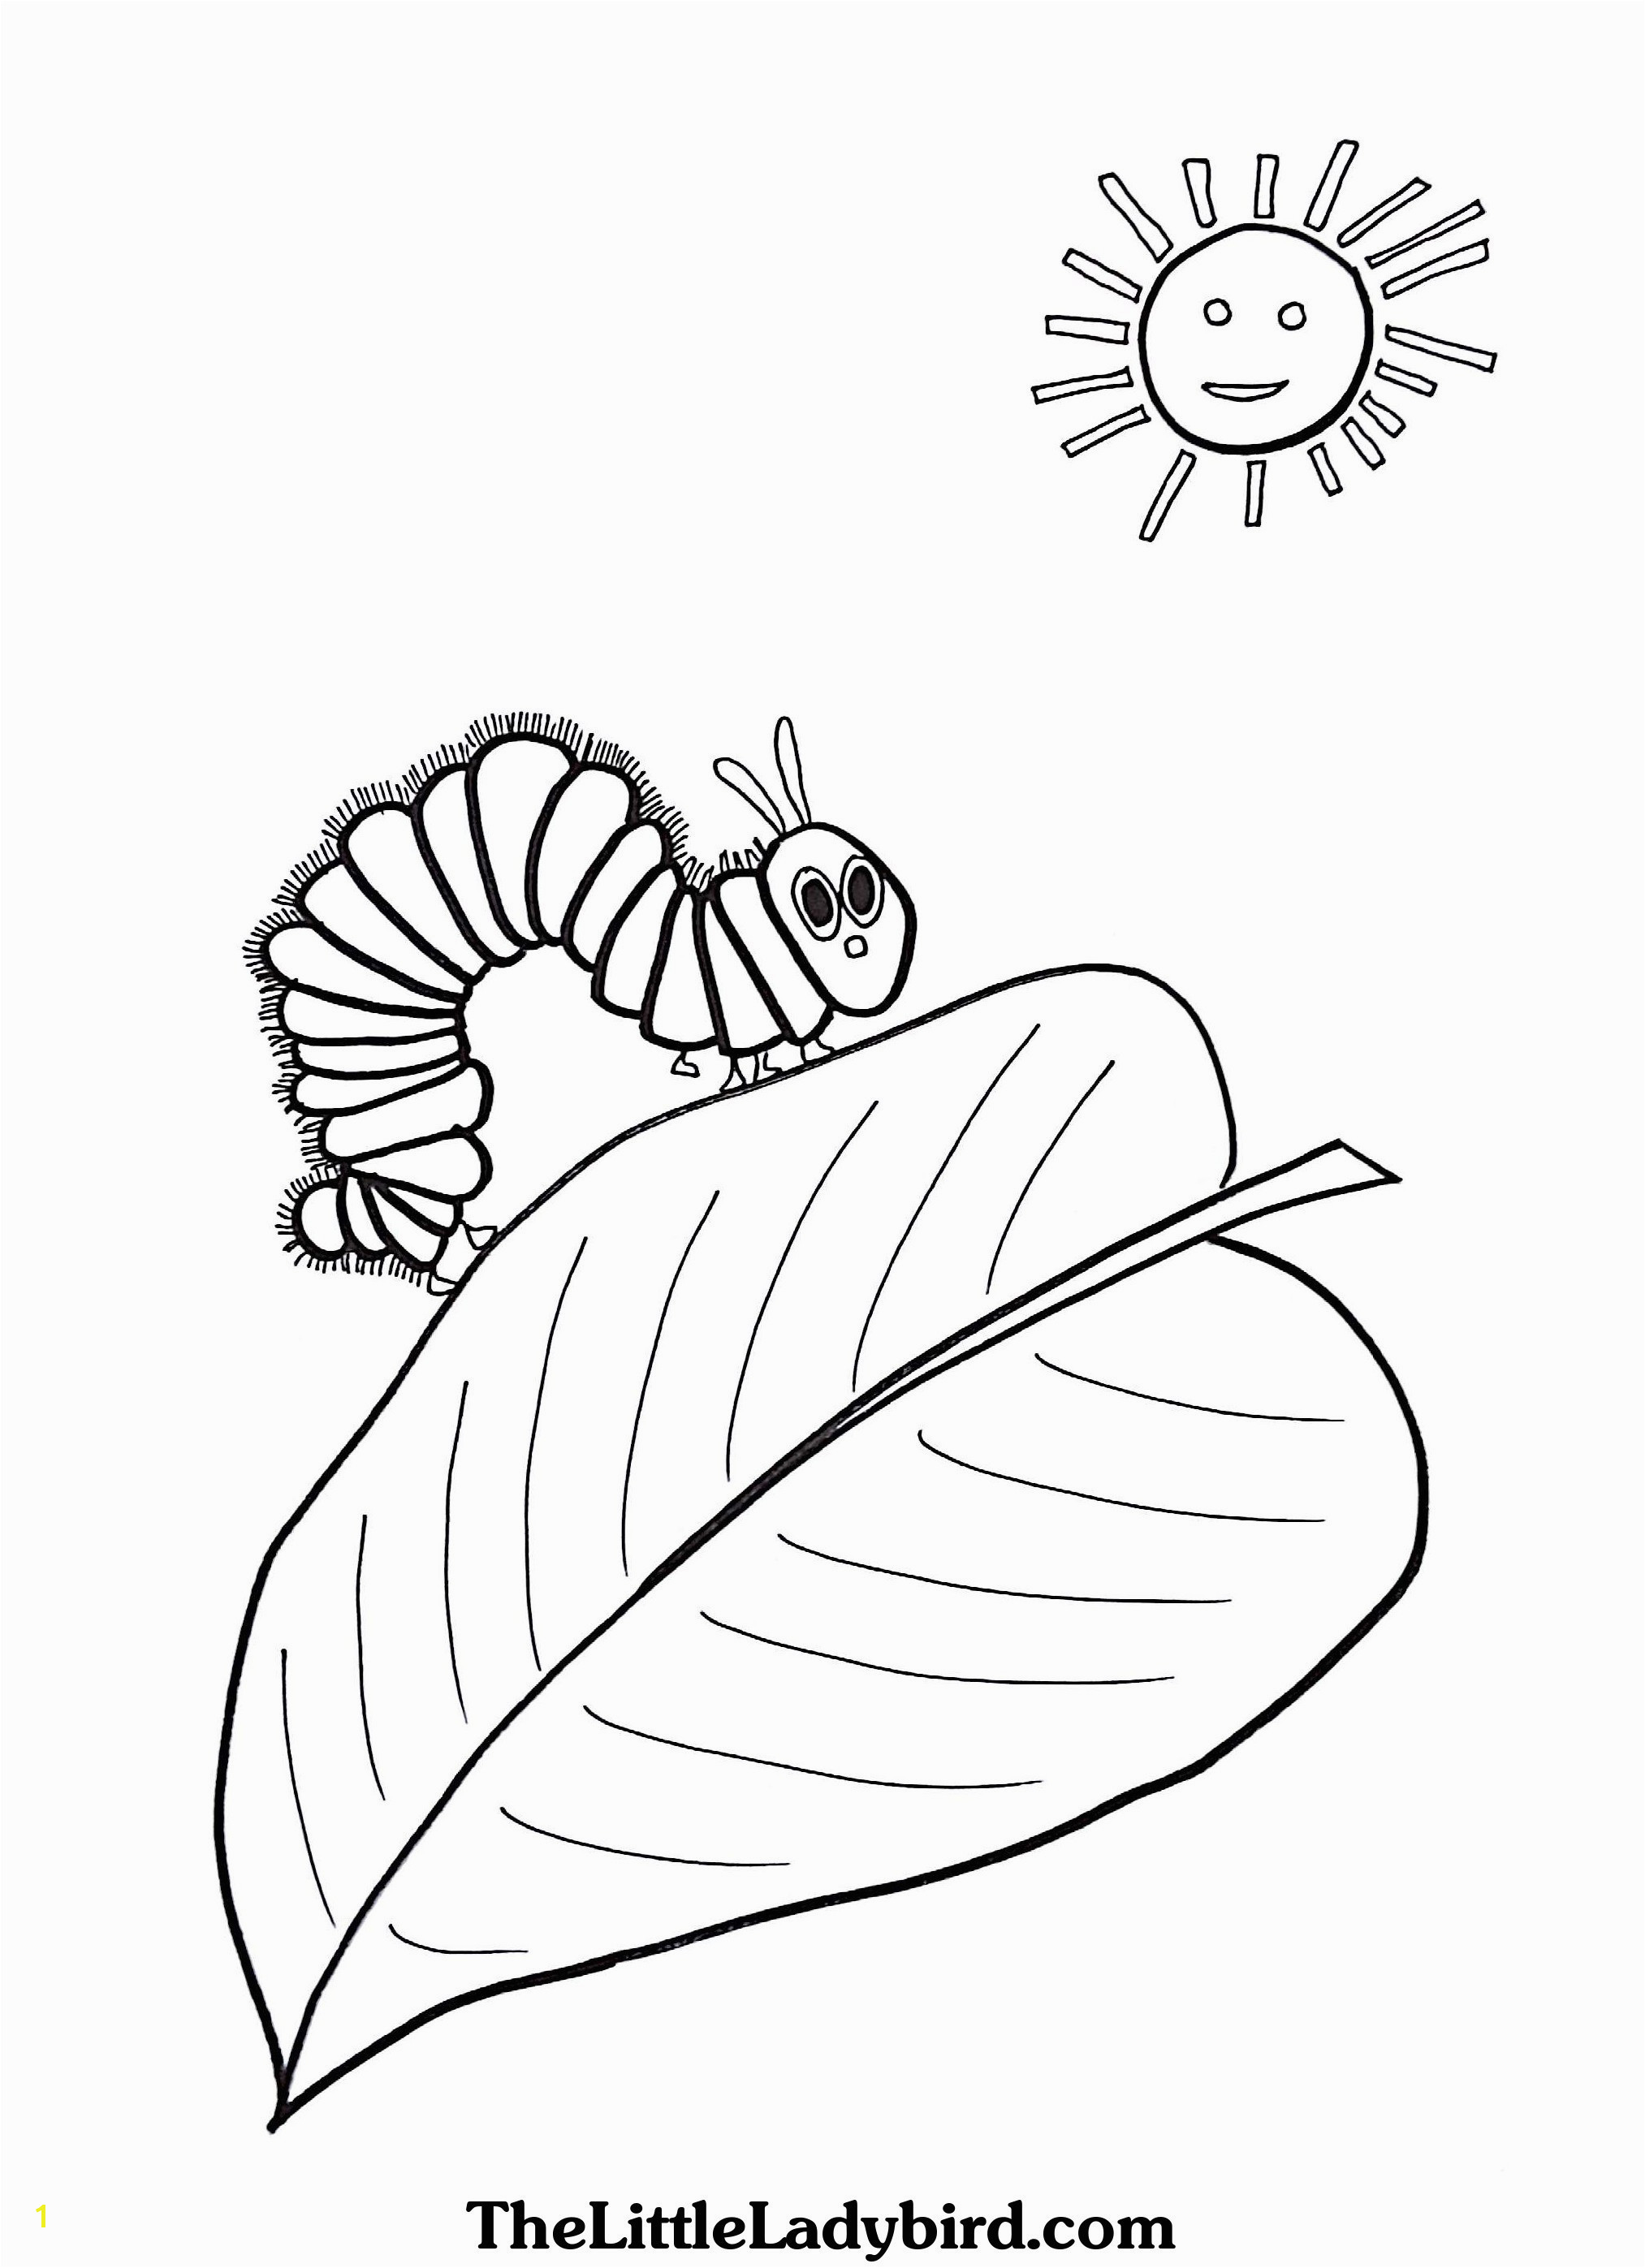 Caterpillar Coloring Page Unique Very Hungry Caterpillar Coloring Pages Heathermarxgallery